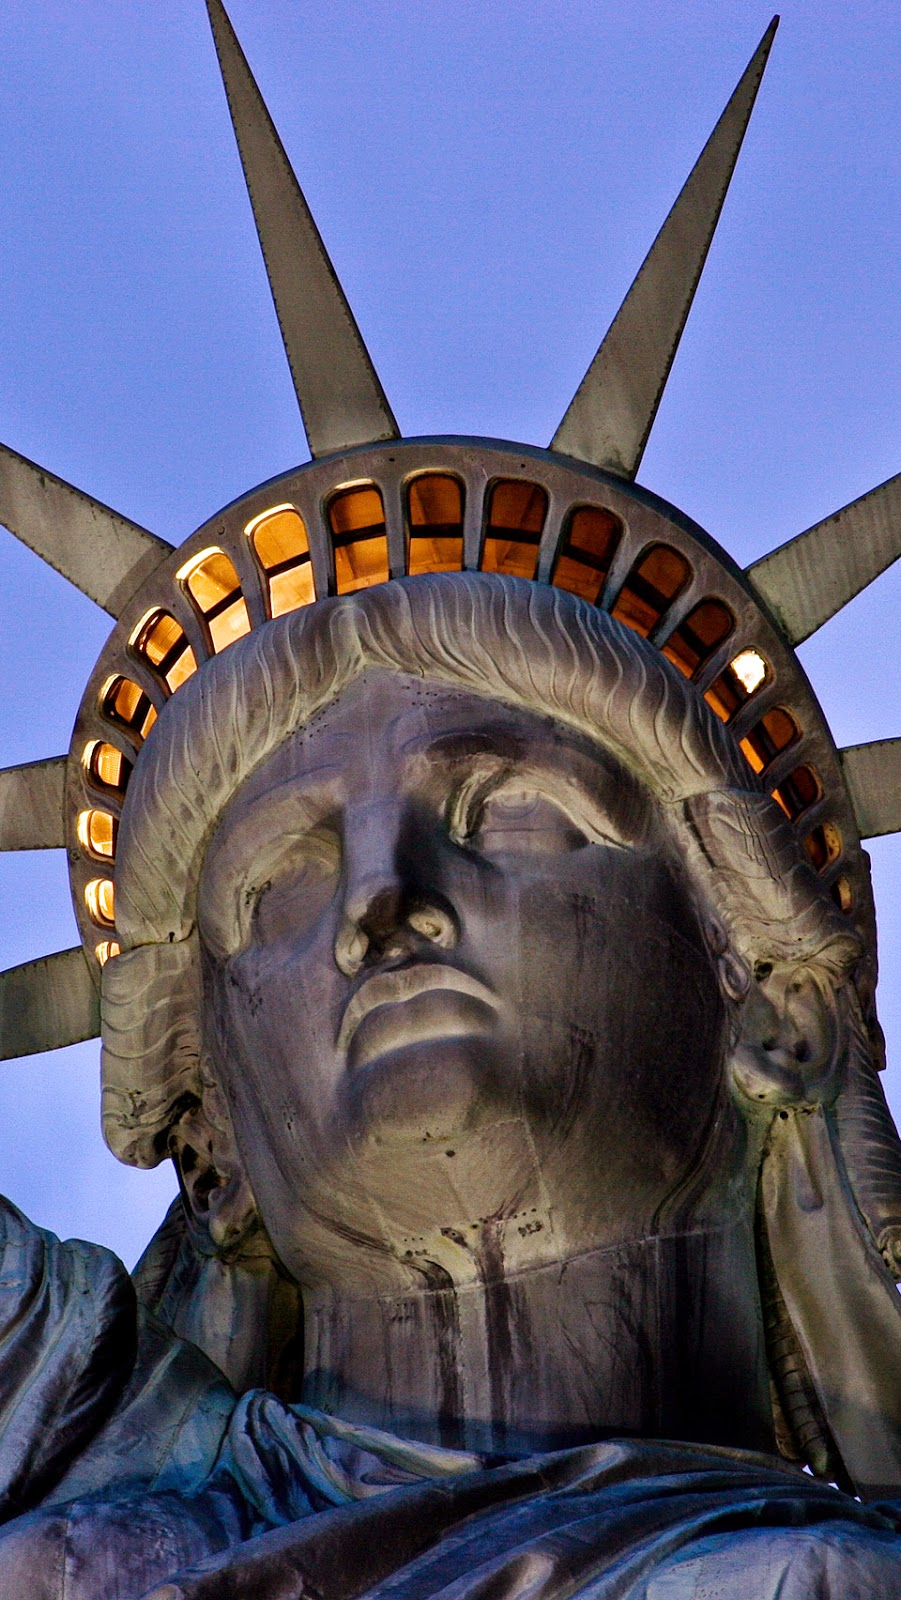 Spend Unforgettable Time in New York-Statue of Liberty